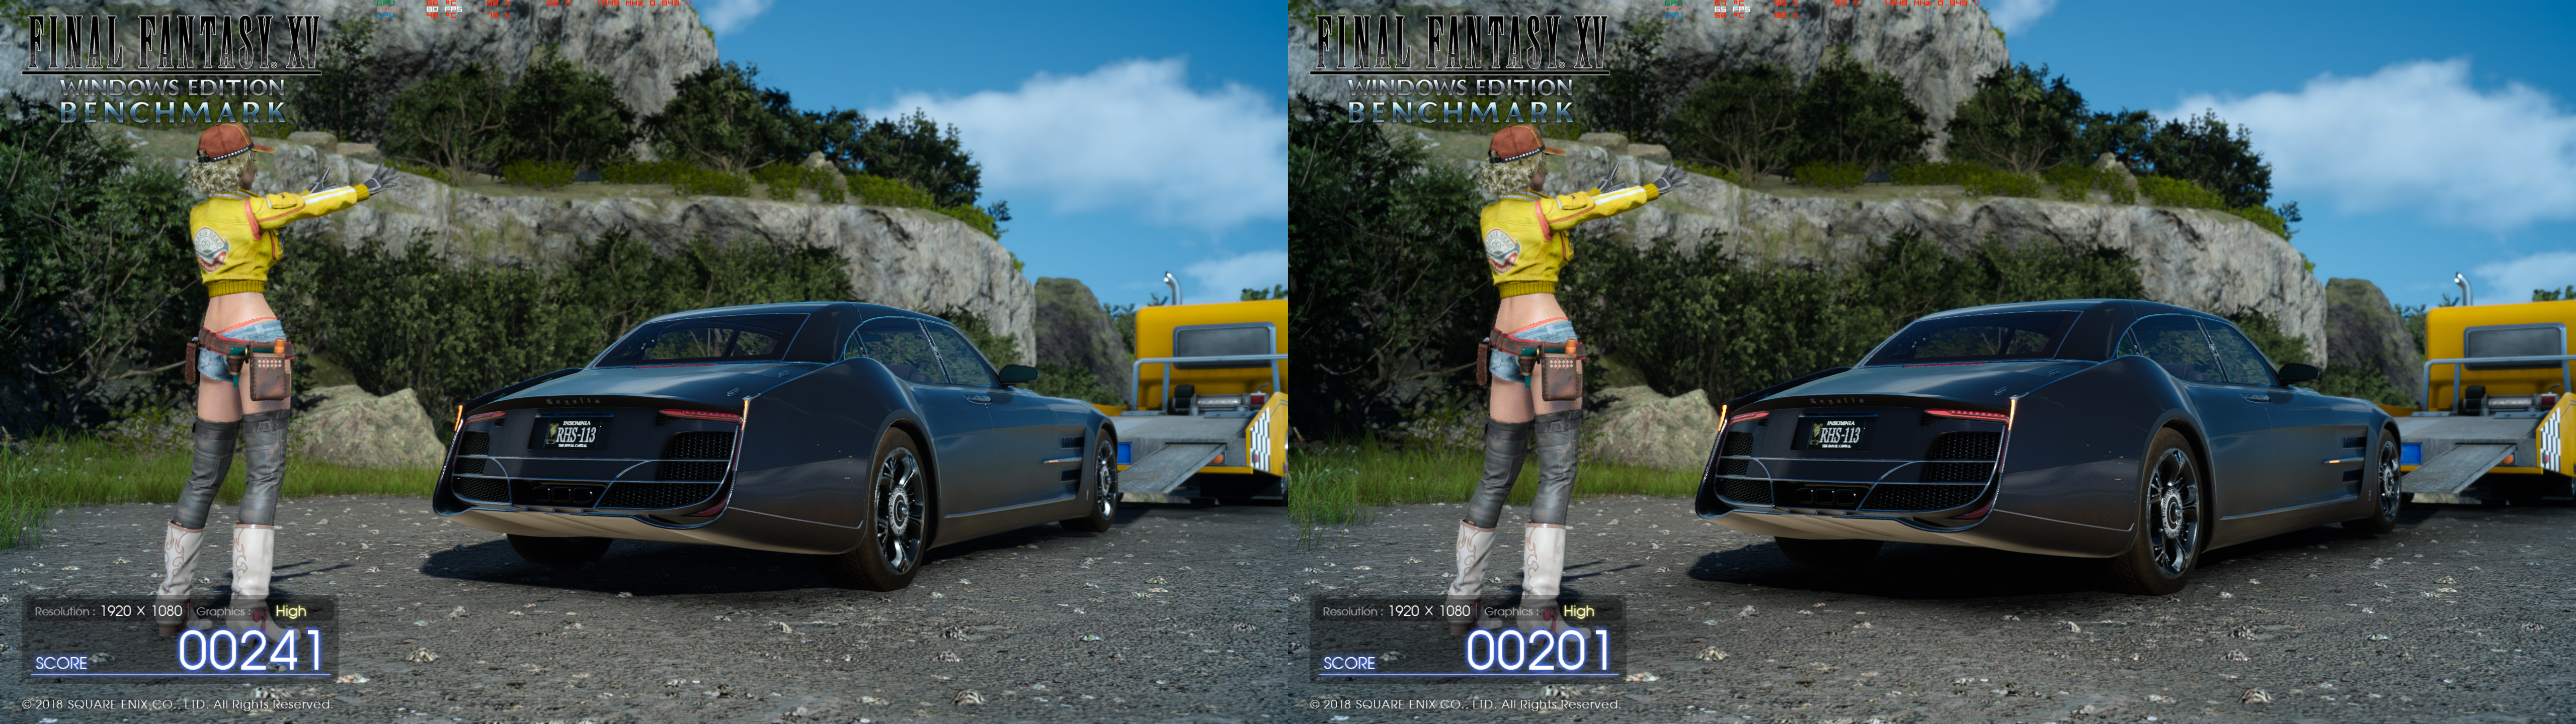 """no-VXAO"" vs ""VXAO"" - Final Fantasy 15 NVIDIA"